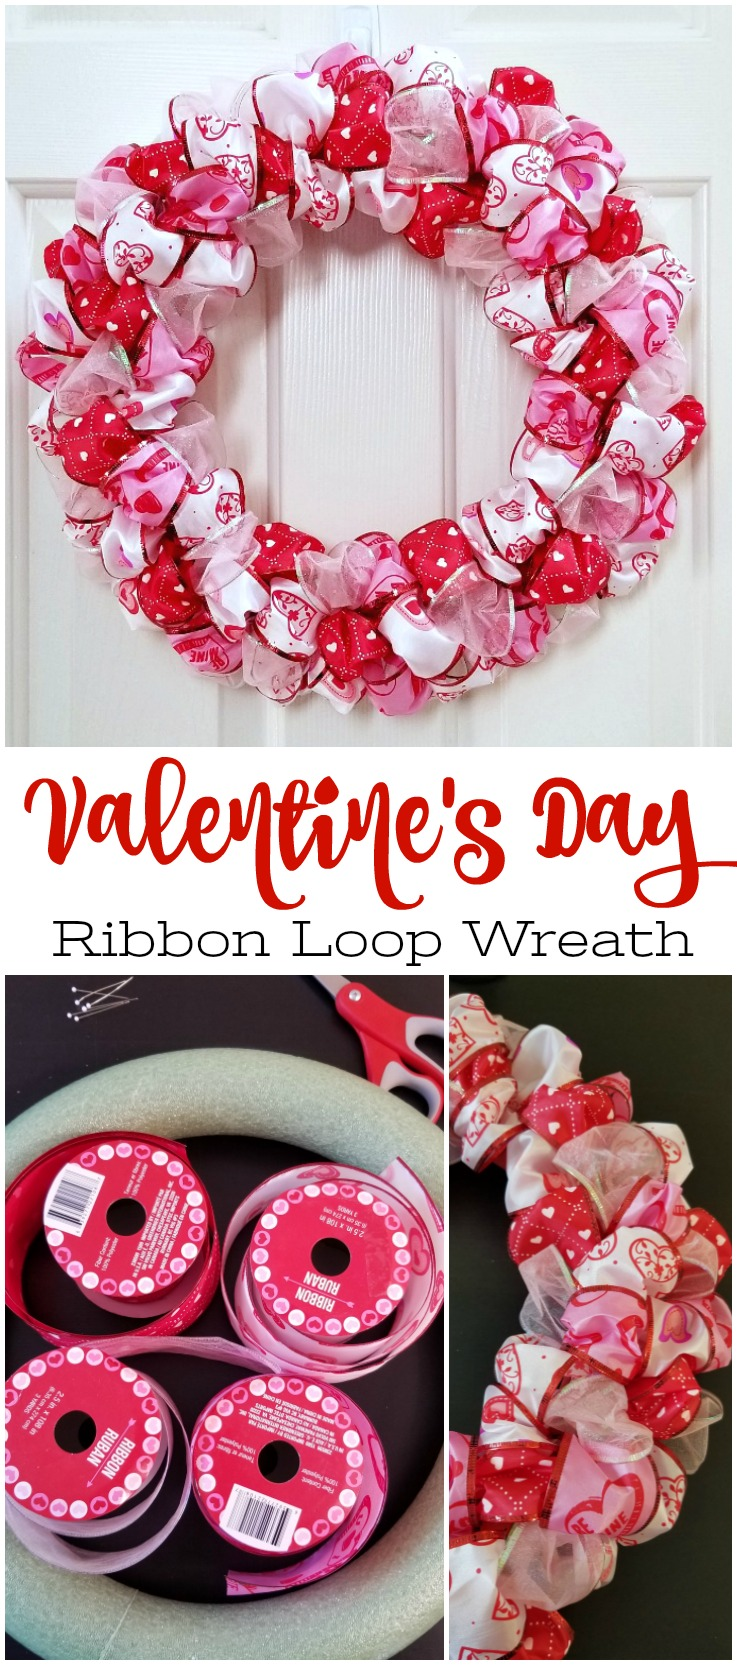 Valentine's Day Ribbon Loop Wreath made from wired ribbon, foam wreath form, red paint, and pins. #valentinesdaywreath #redwreath